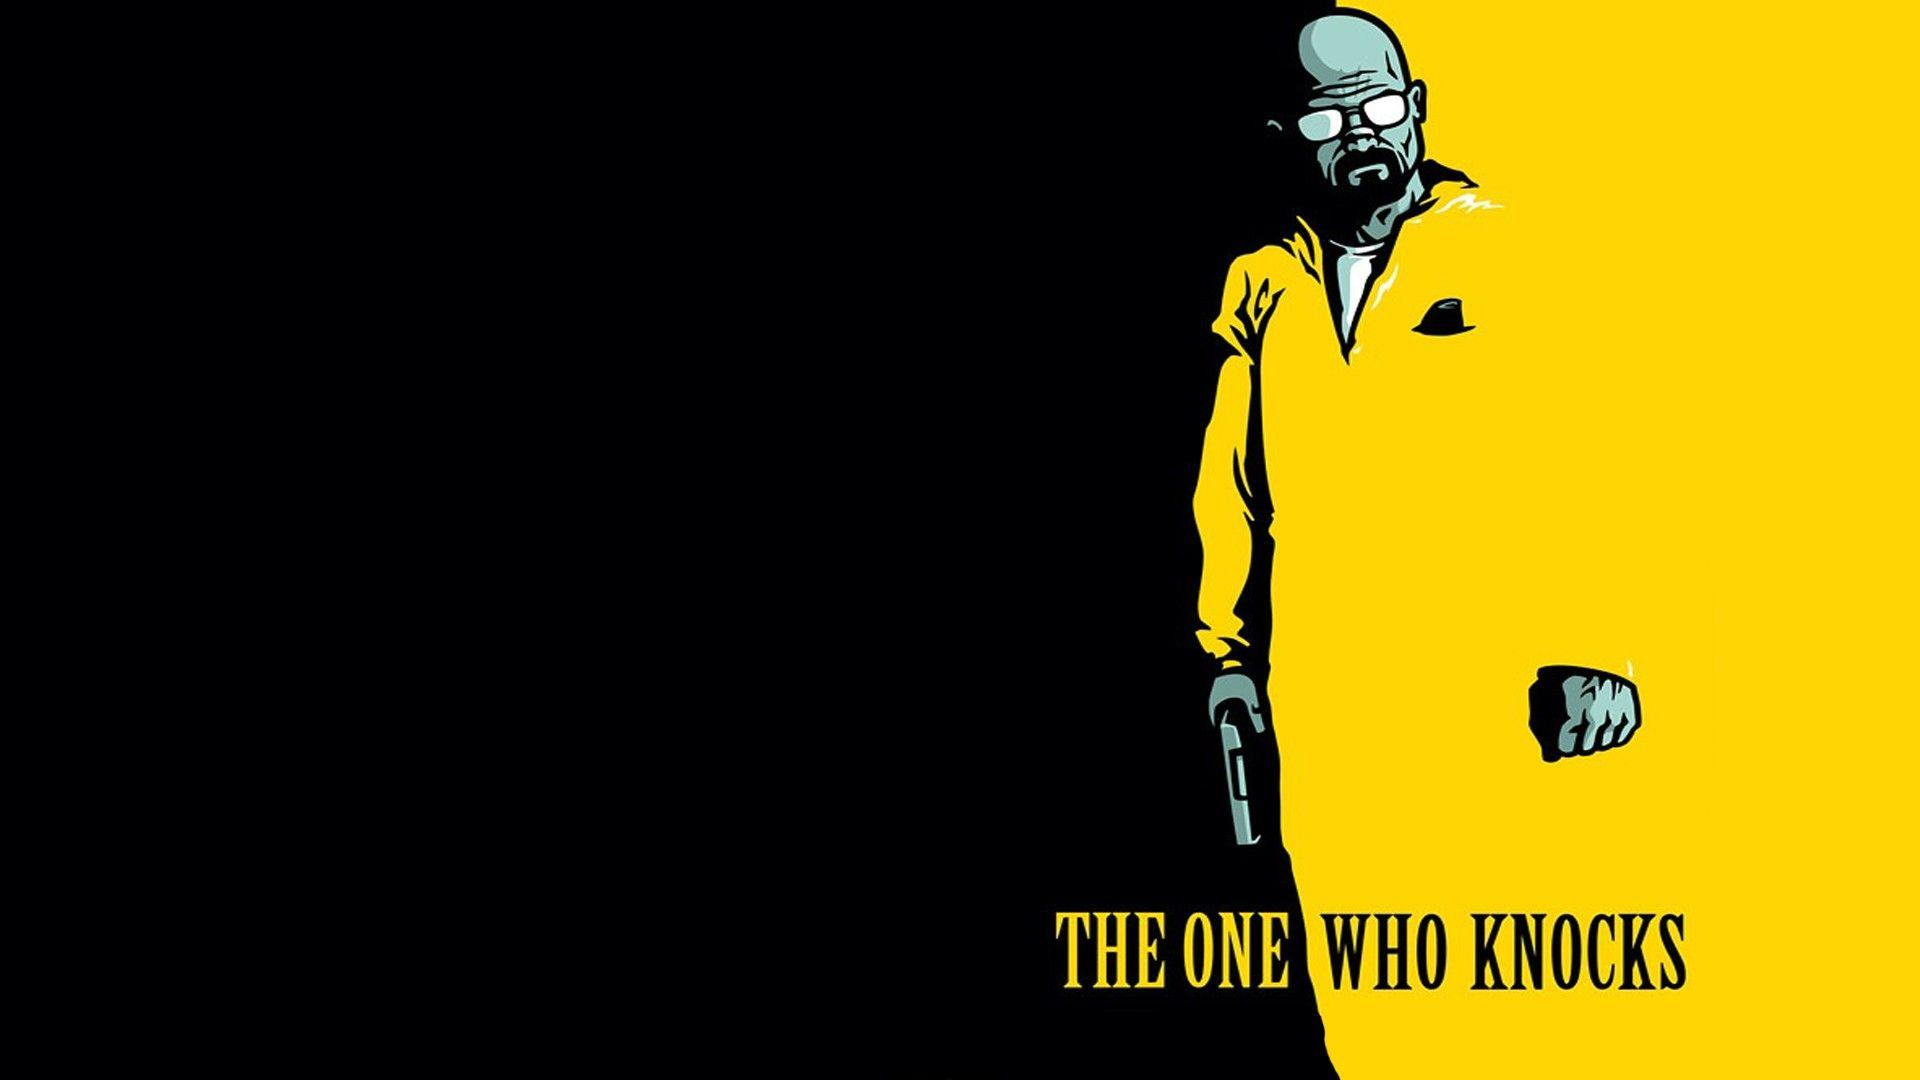 breaking bad 50 wallpapers - photo #9